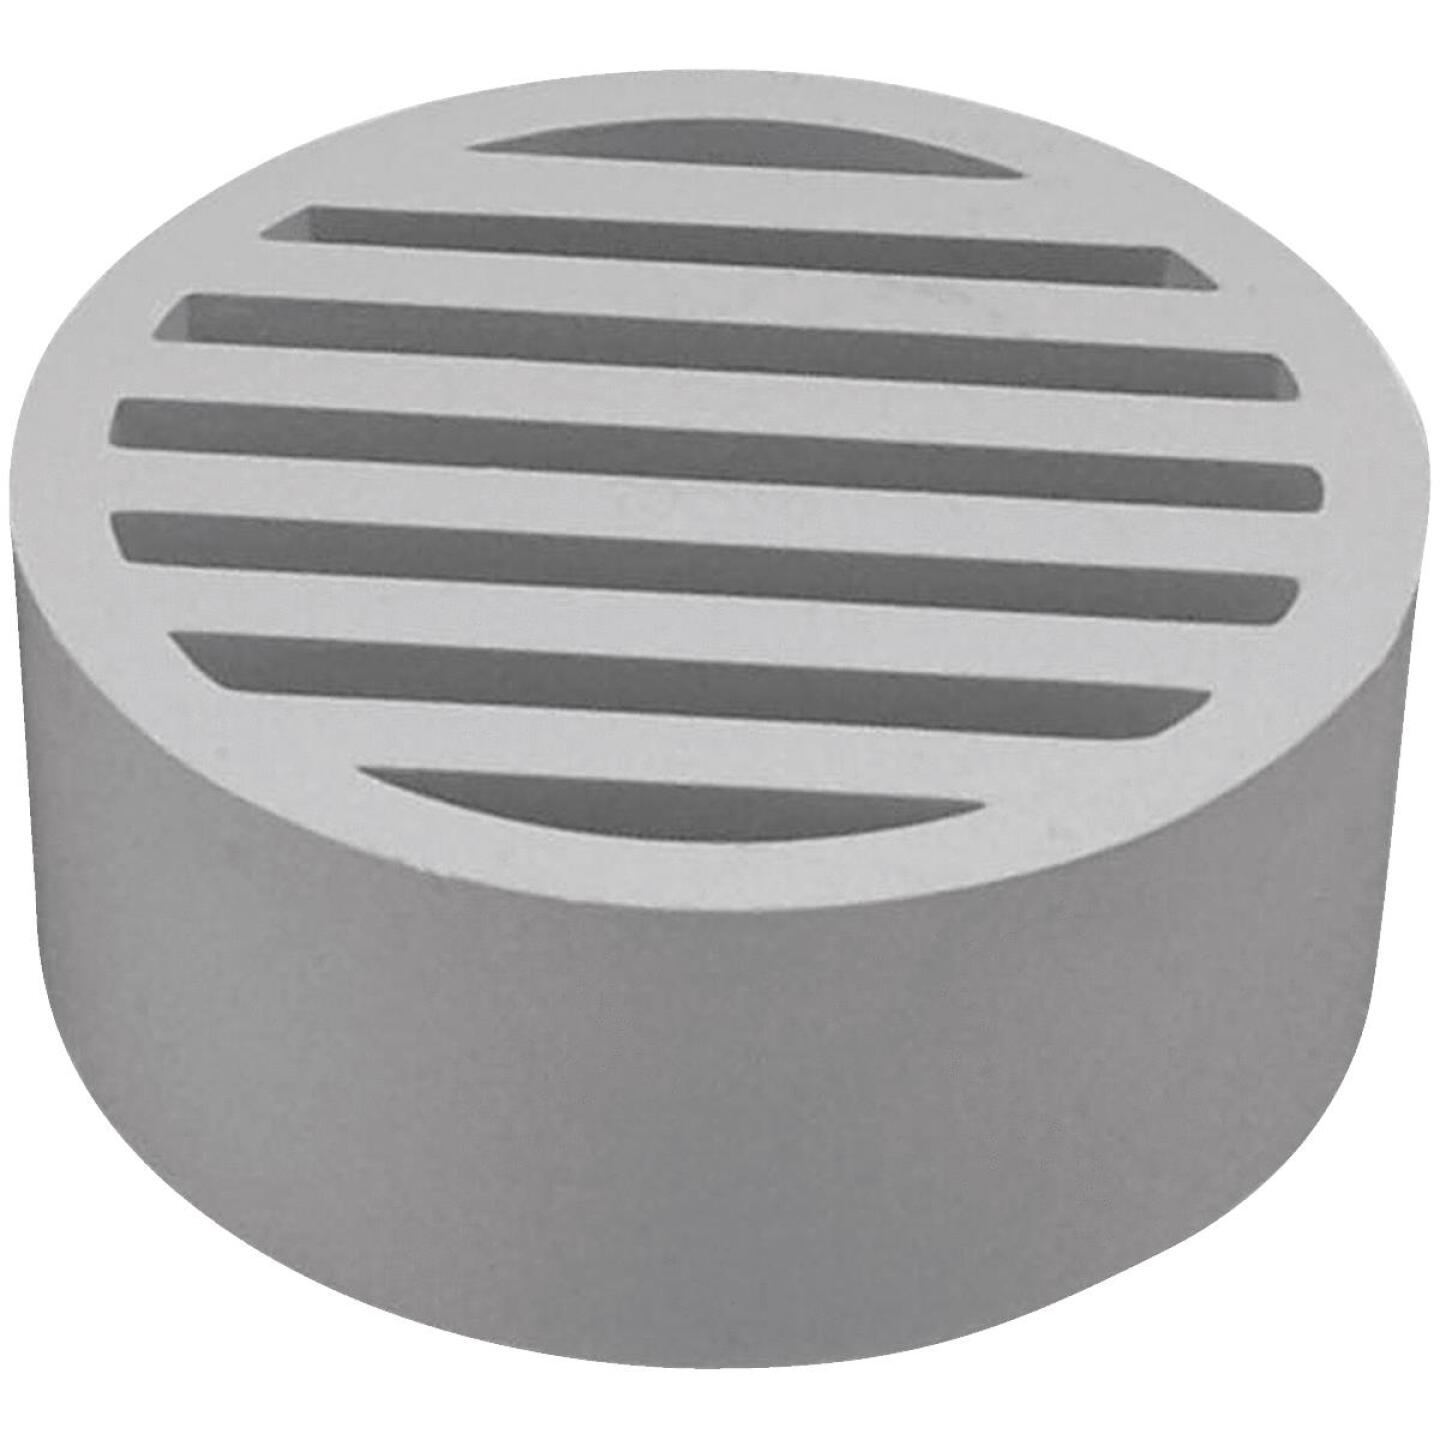 Genova Hub-Fit 3 In. PVC, Vinyl Floor Strainer Image 1